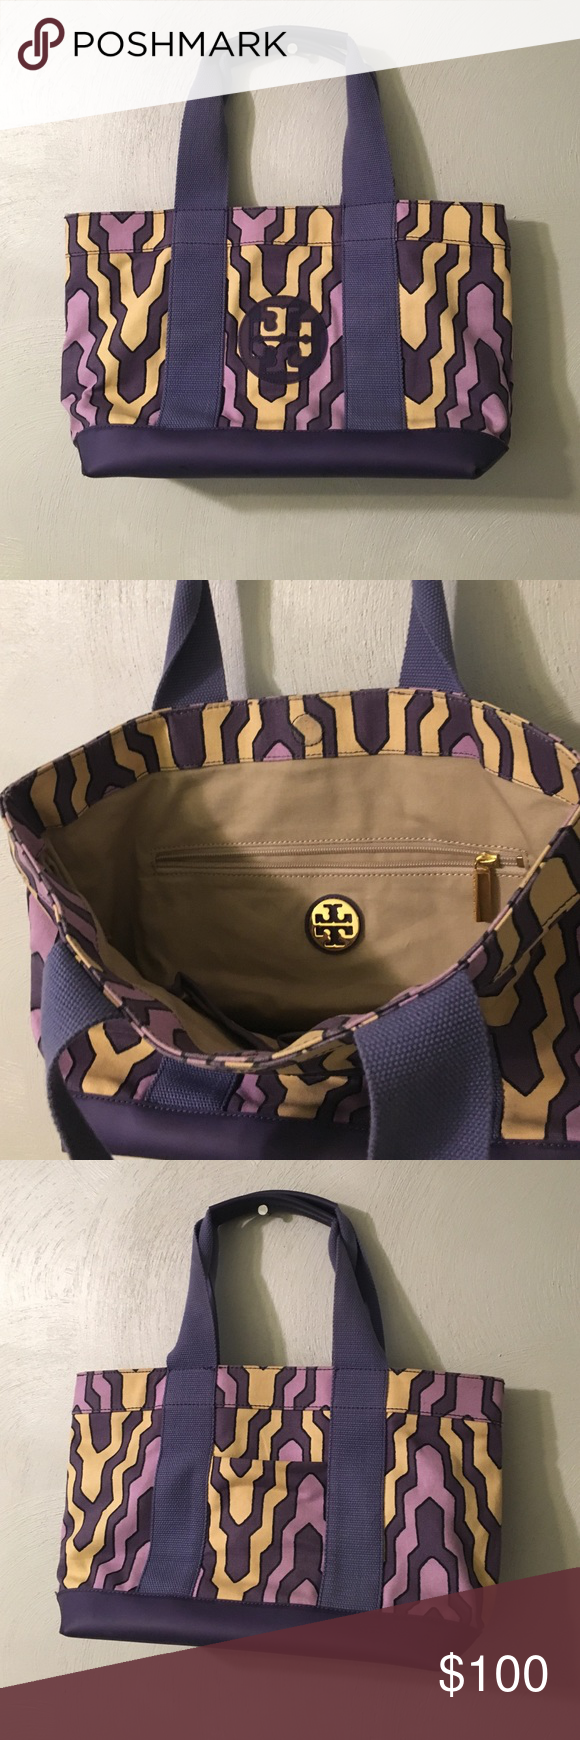 Tory Burch tote Barely used like new Tory Burch tote. Zipper pocket and cell pockets inside and one outside pocket. Tory Burch Bags